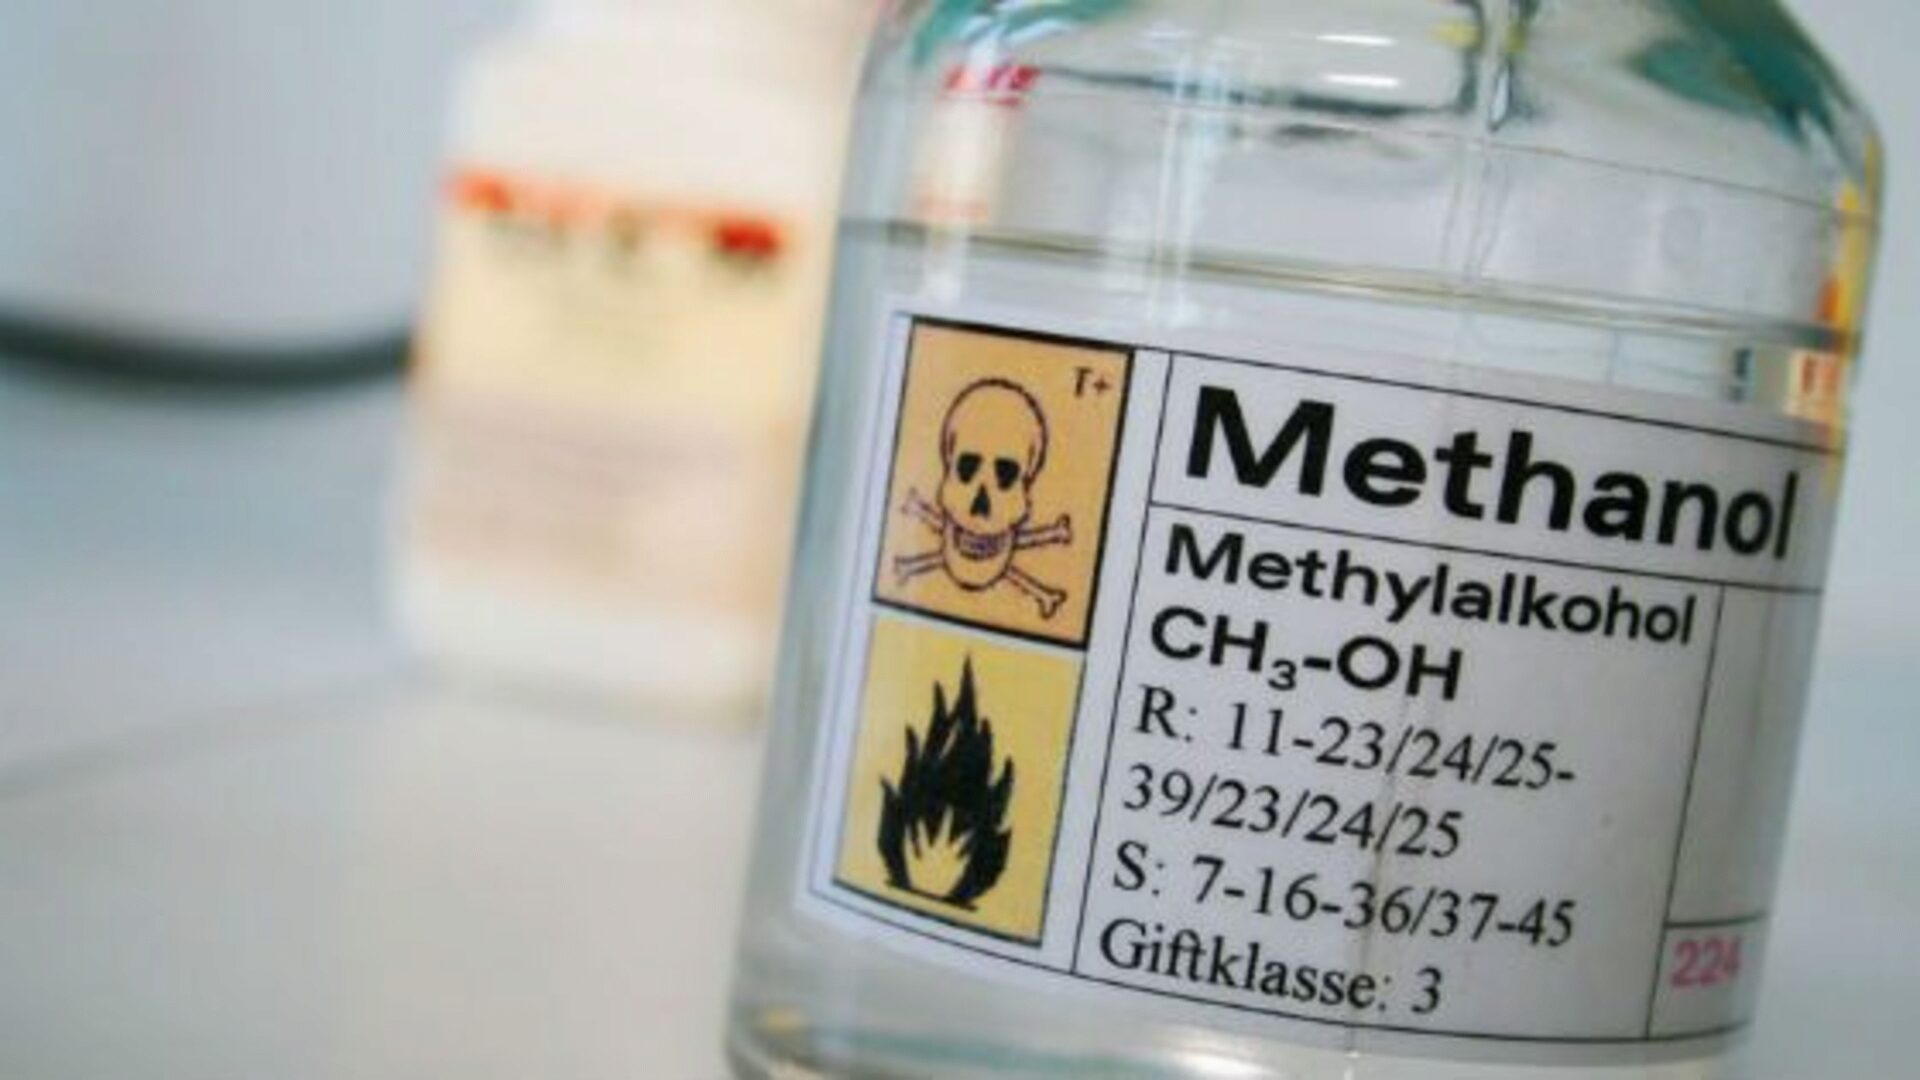 What happens if you drink methyl alcohol?